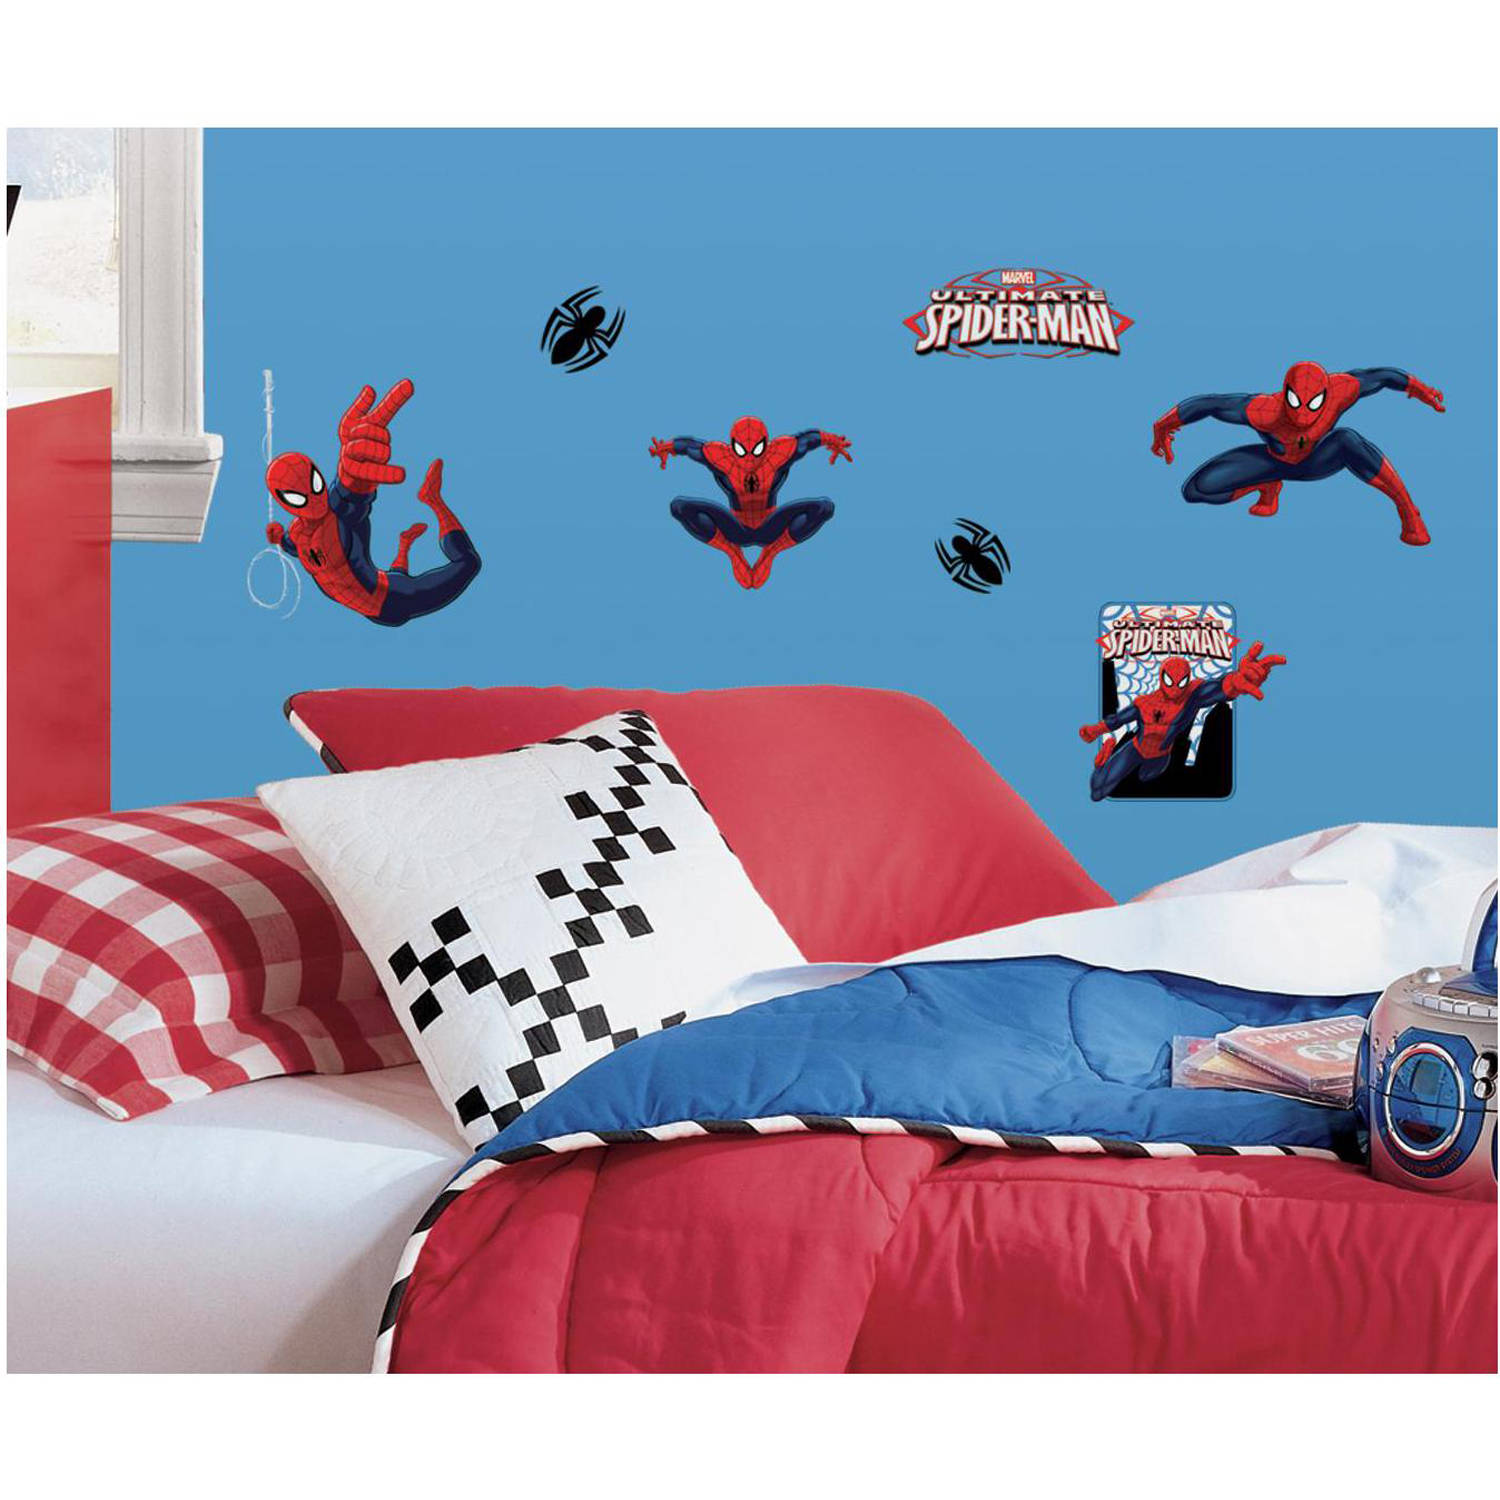 RoomMates Spider Man Ultimate Spider Man Peel And Stick Wall Decals    Walmart.com